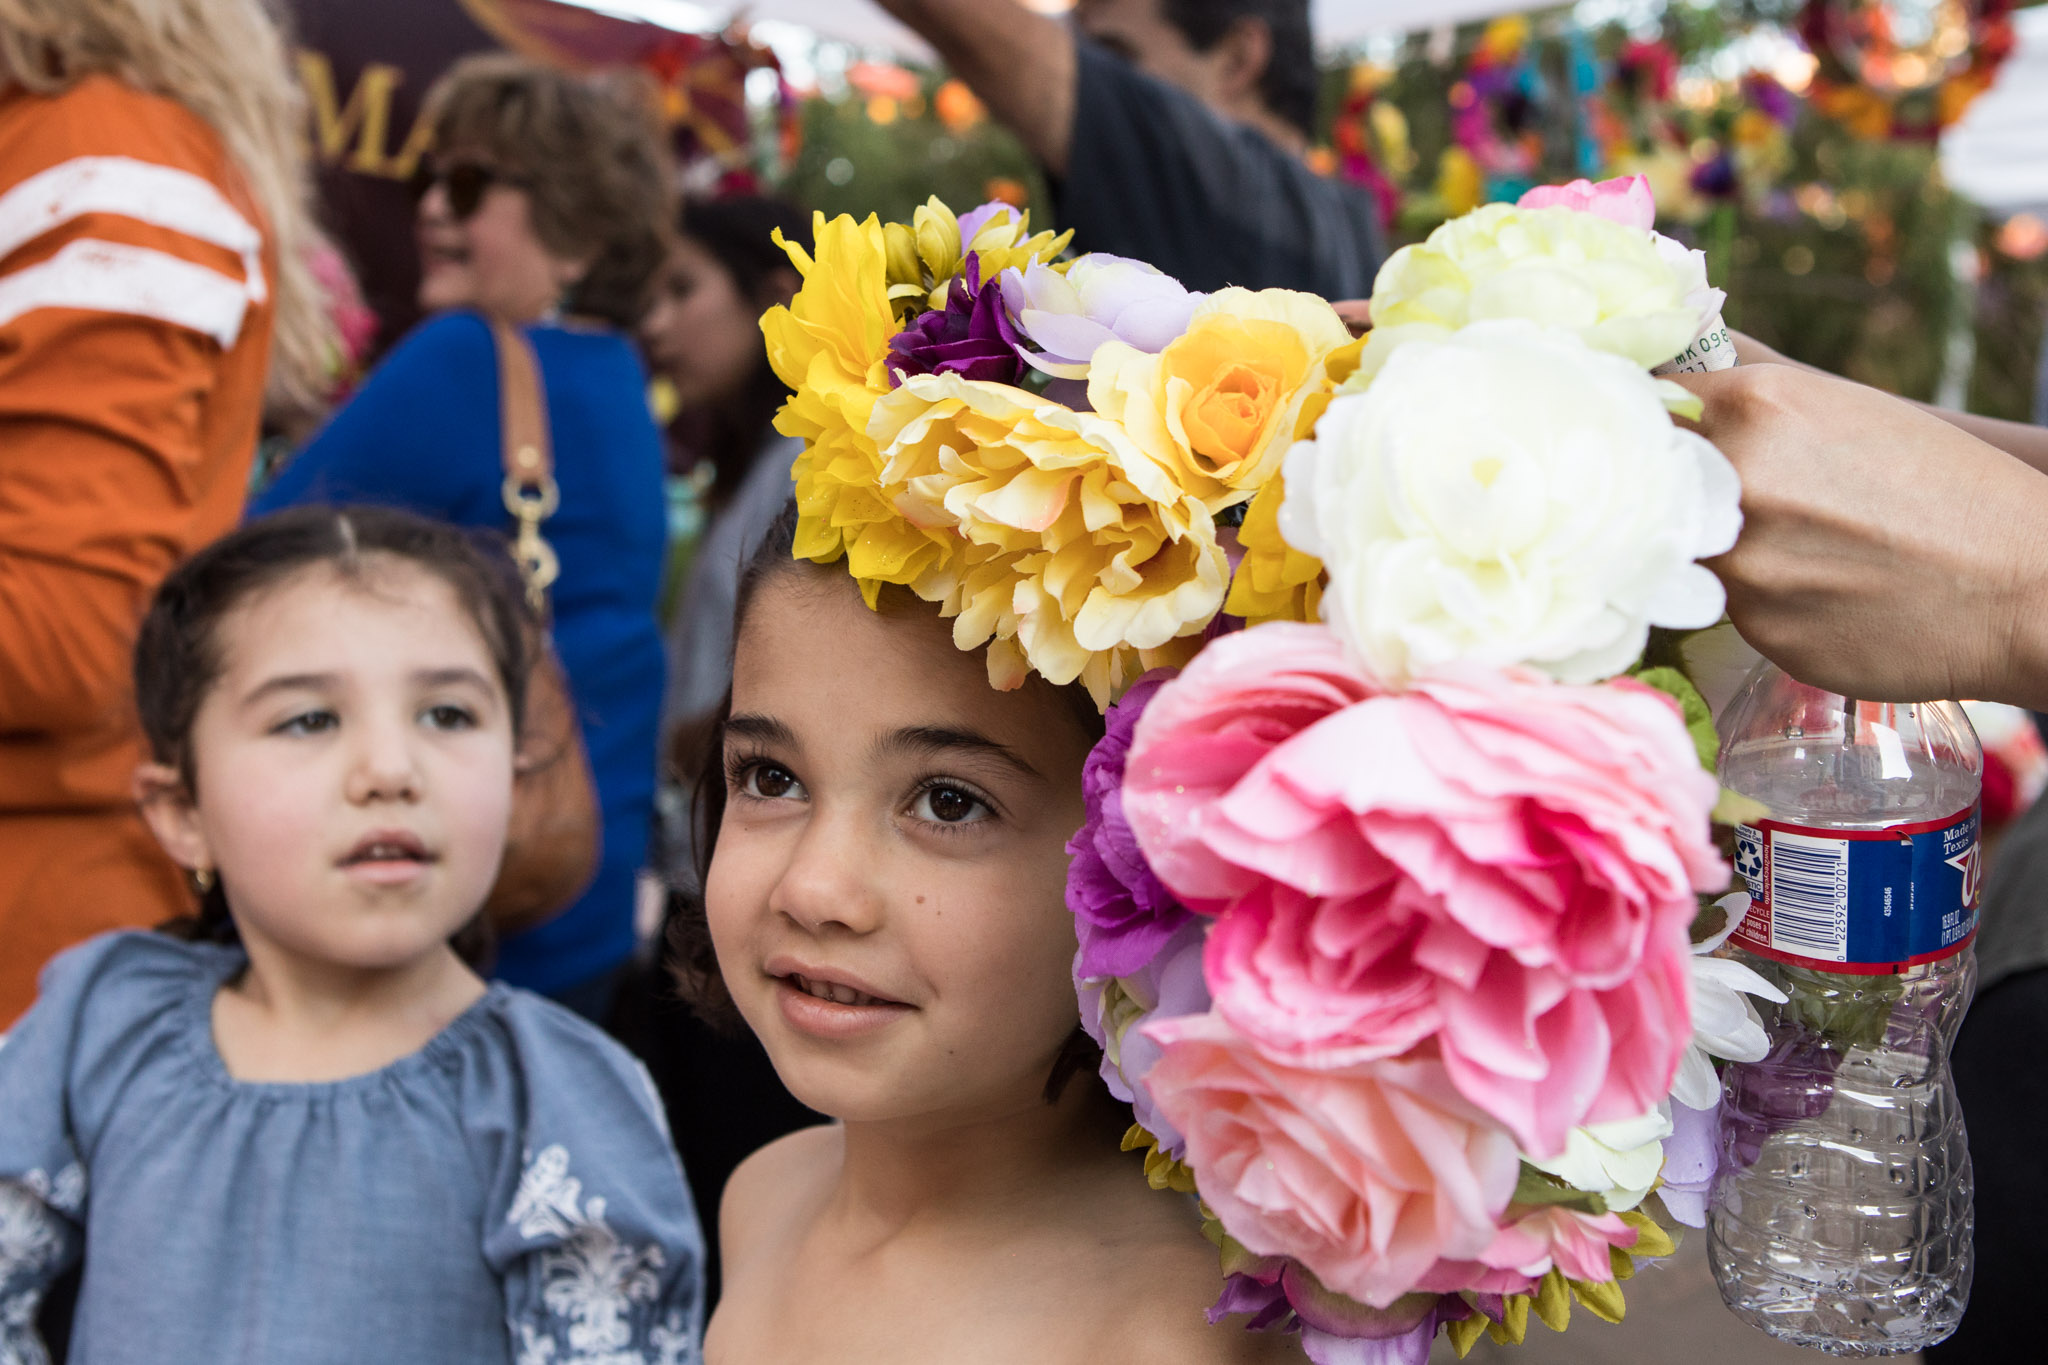 (From left) Jimena Rodriguez Moya, 5, and Isabel Fernandez Moya, 5, try on flower crowns for Día de los Muertos at the Pearl.